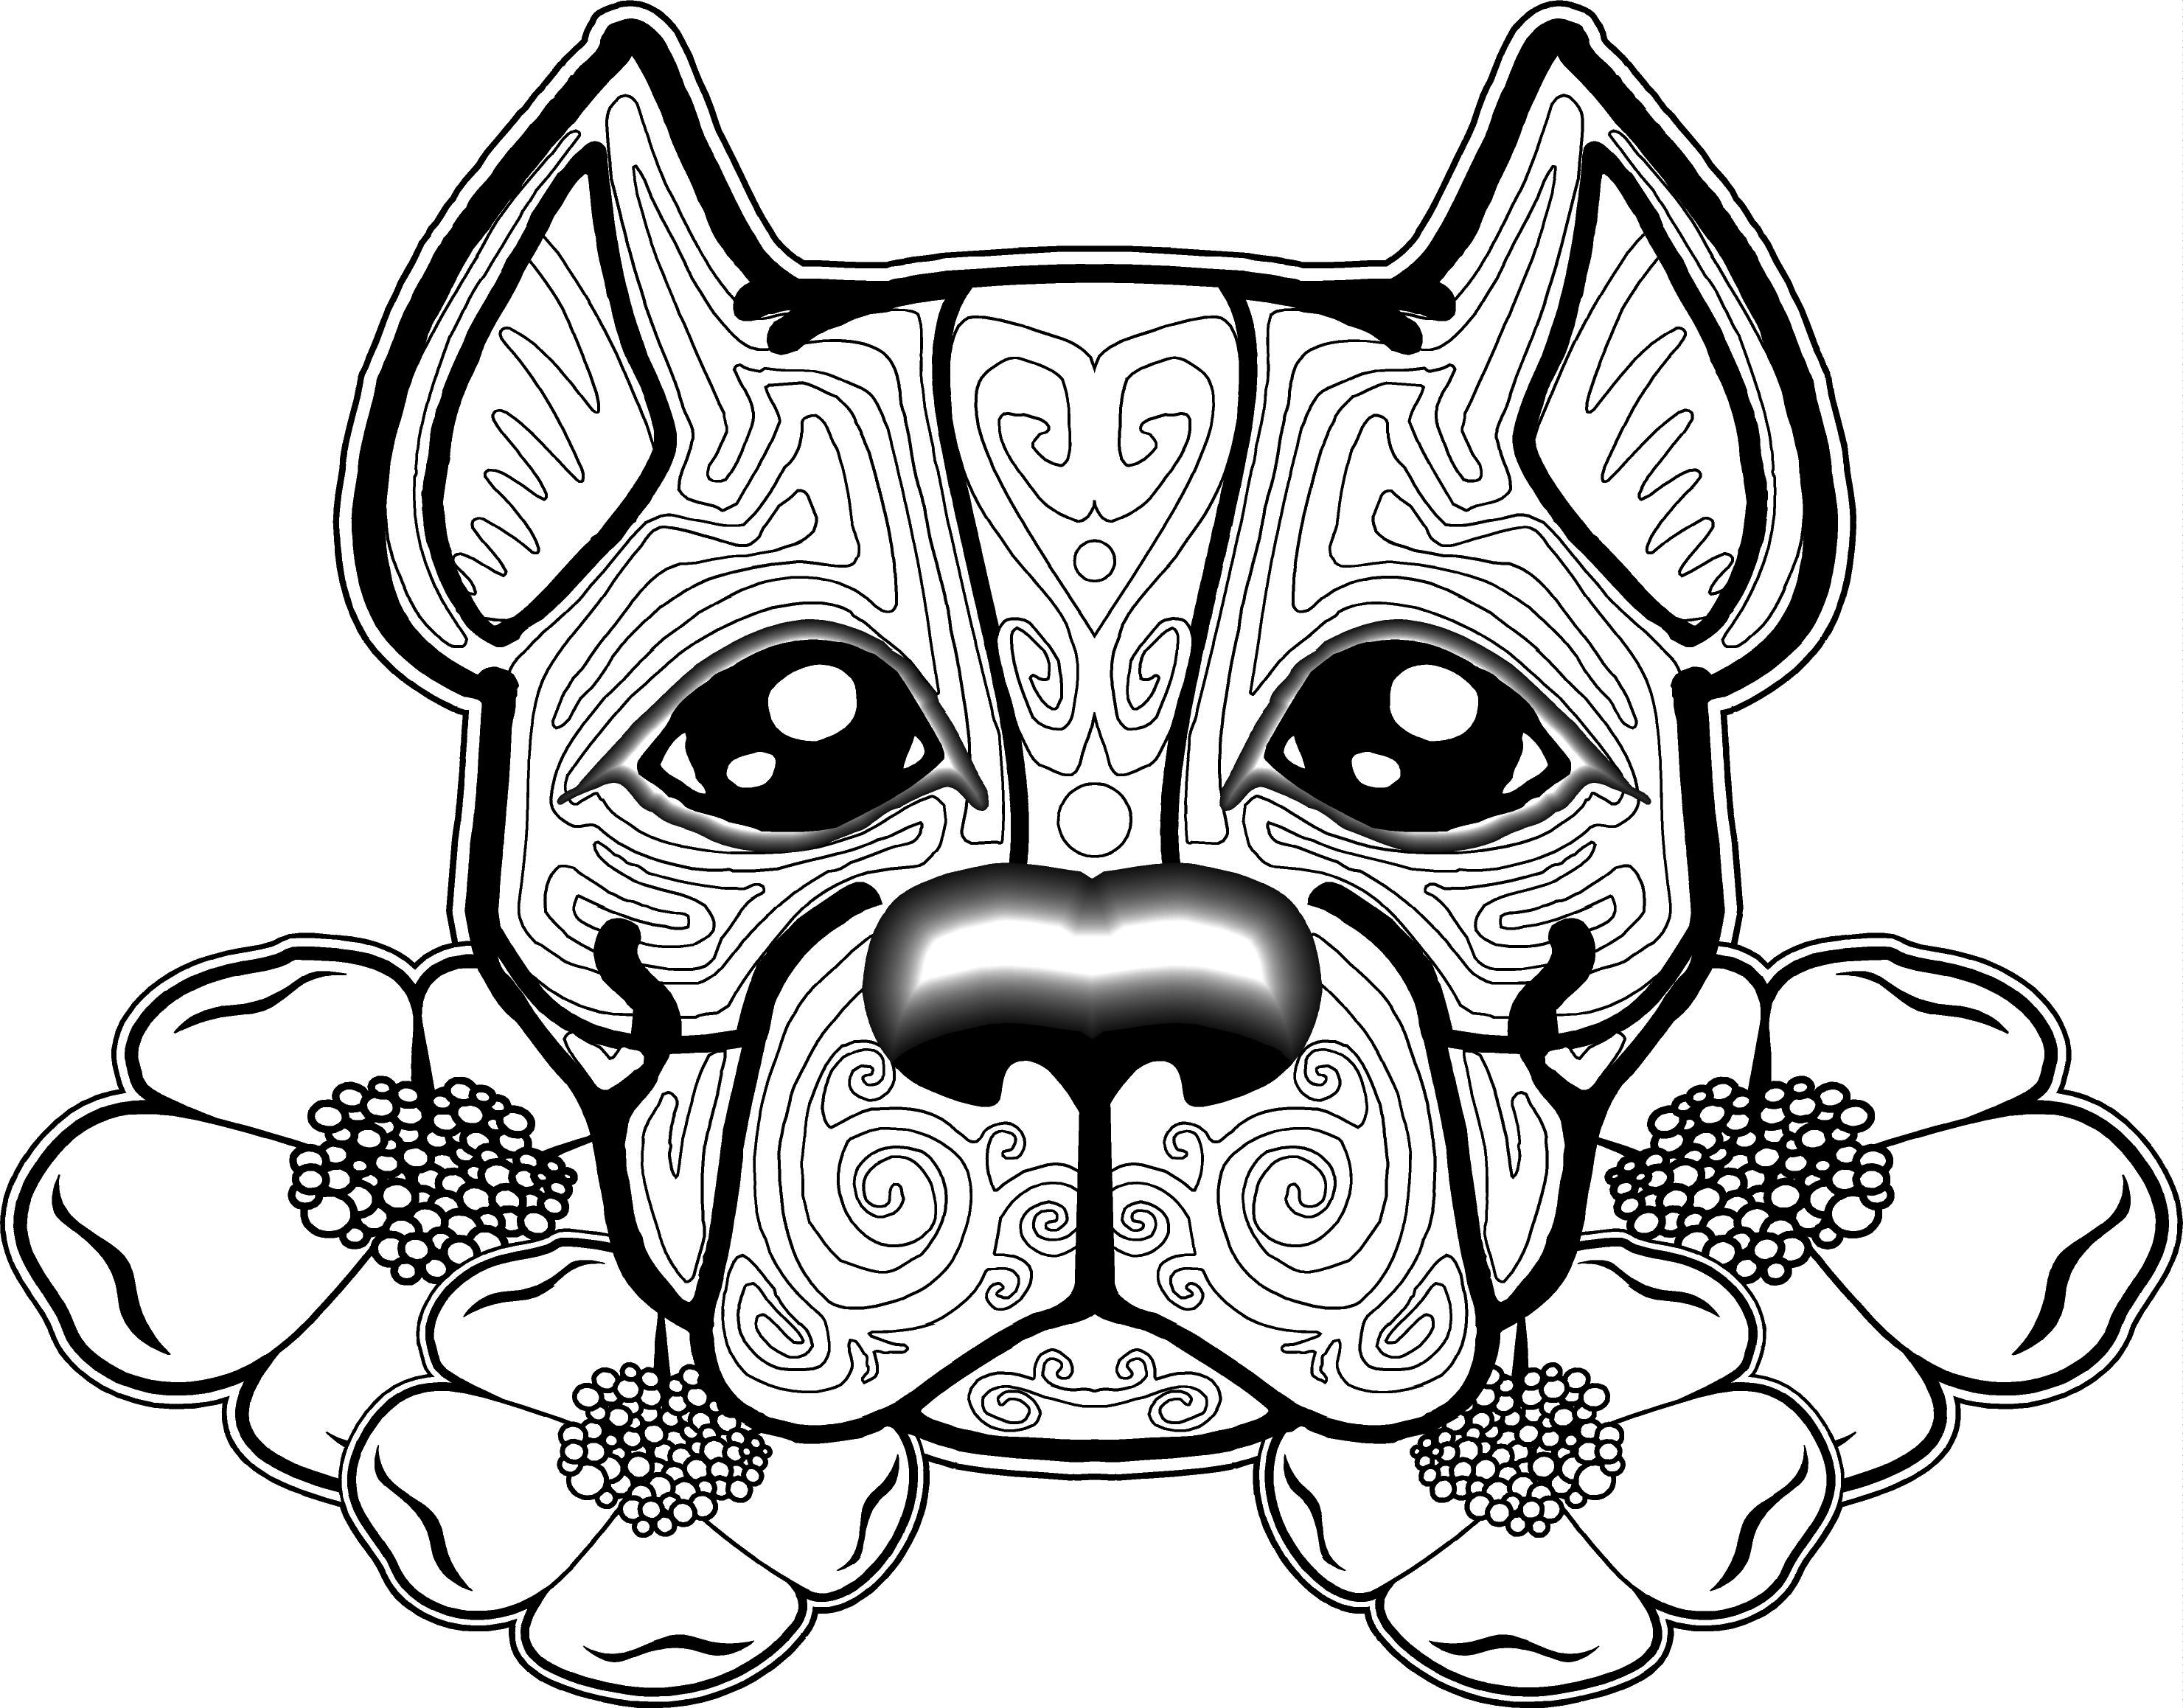 Dog Head Coloring Pages At Getdrawings Com Free For Personal Use